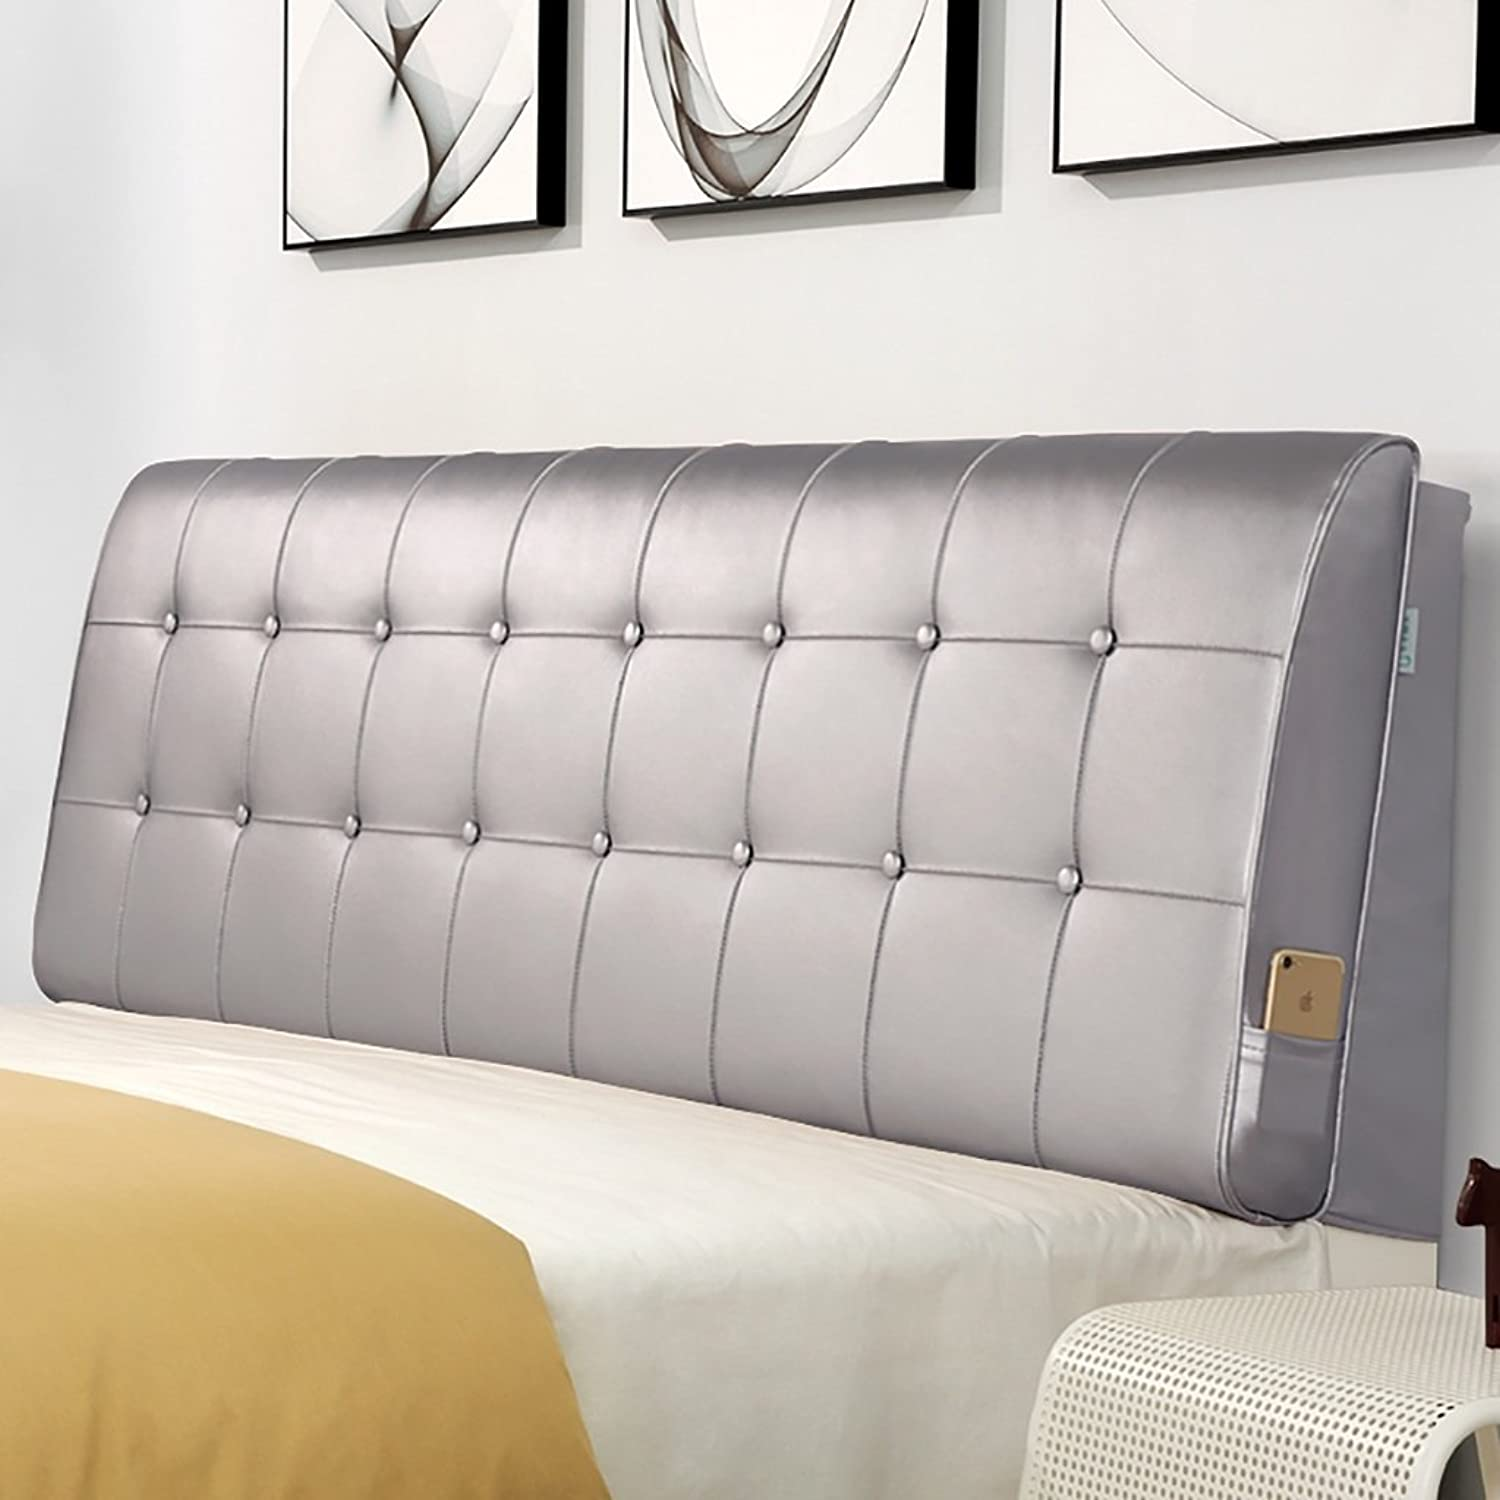 Headboard Bed Backrest Cushion Bed Cushion Bedside Pillow No Headboard Leather Large Soft Pillow Lumbar Support Detachable 17 Solid colors 5